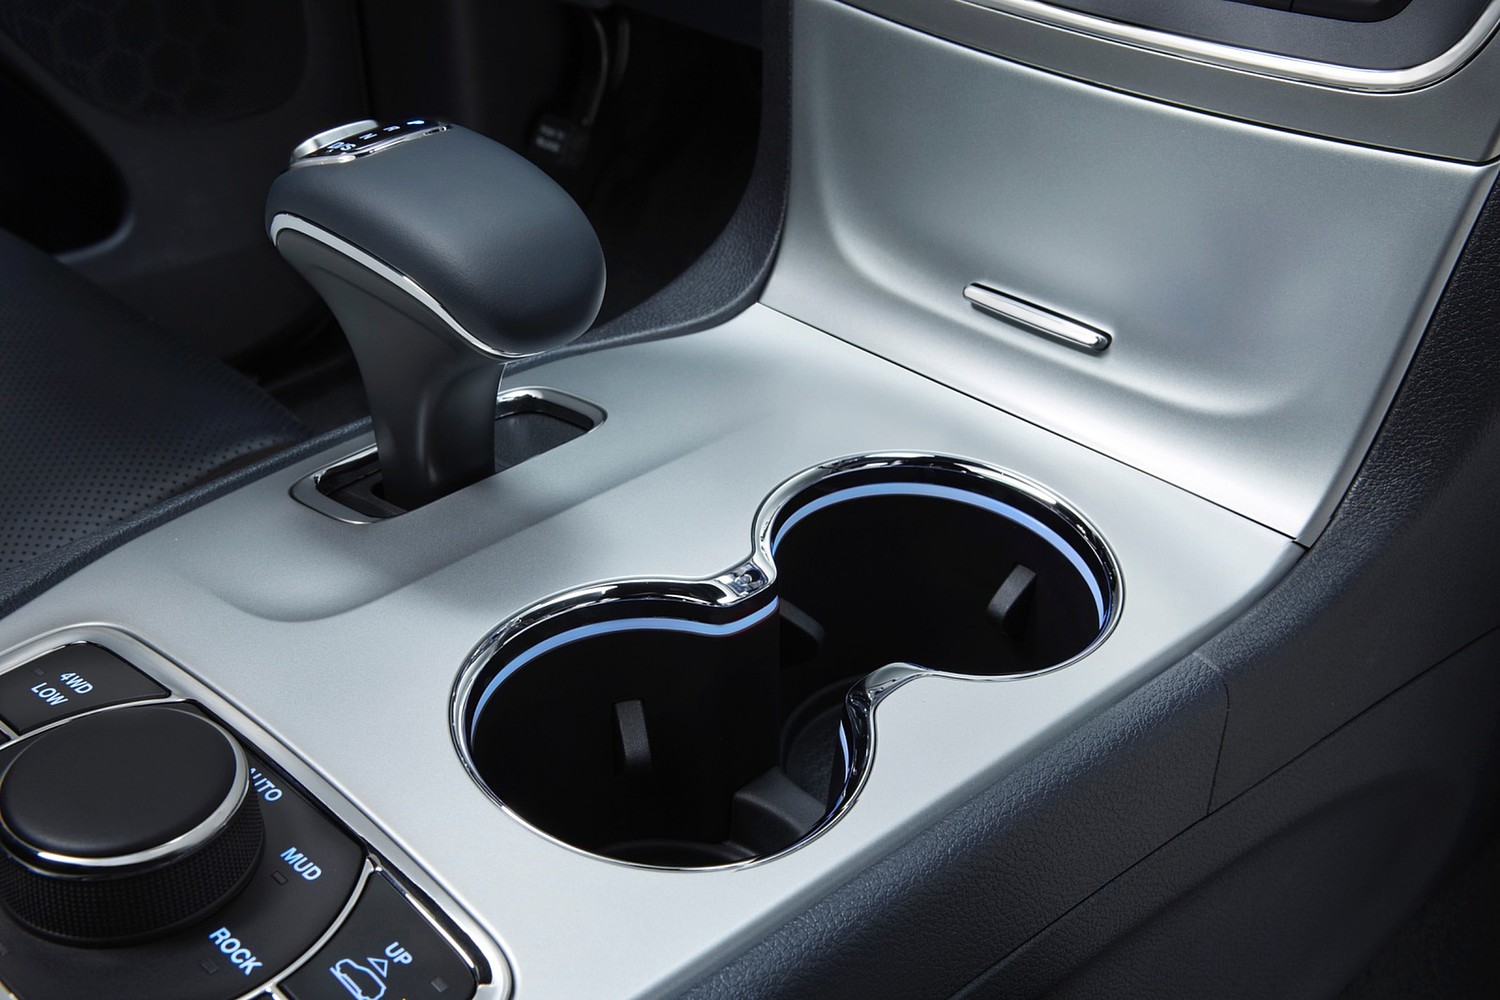 Jeep Grand Cherokee Summit 4dr SUV Shifter (2015 model year shown)